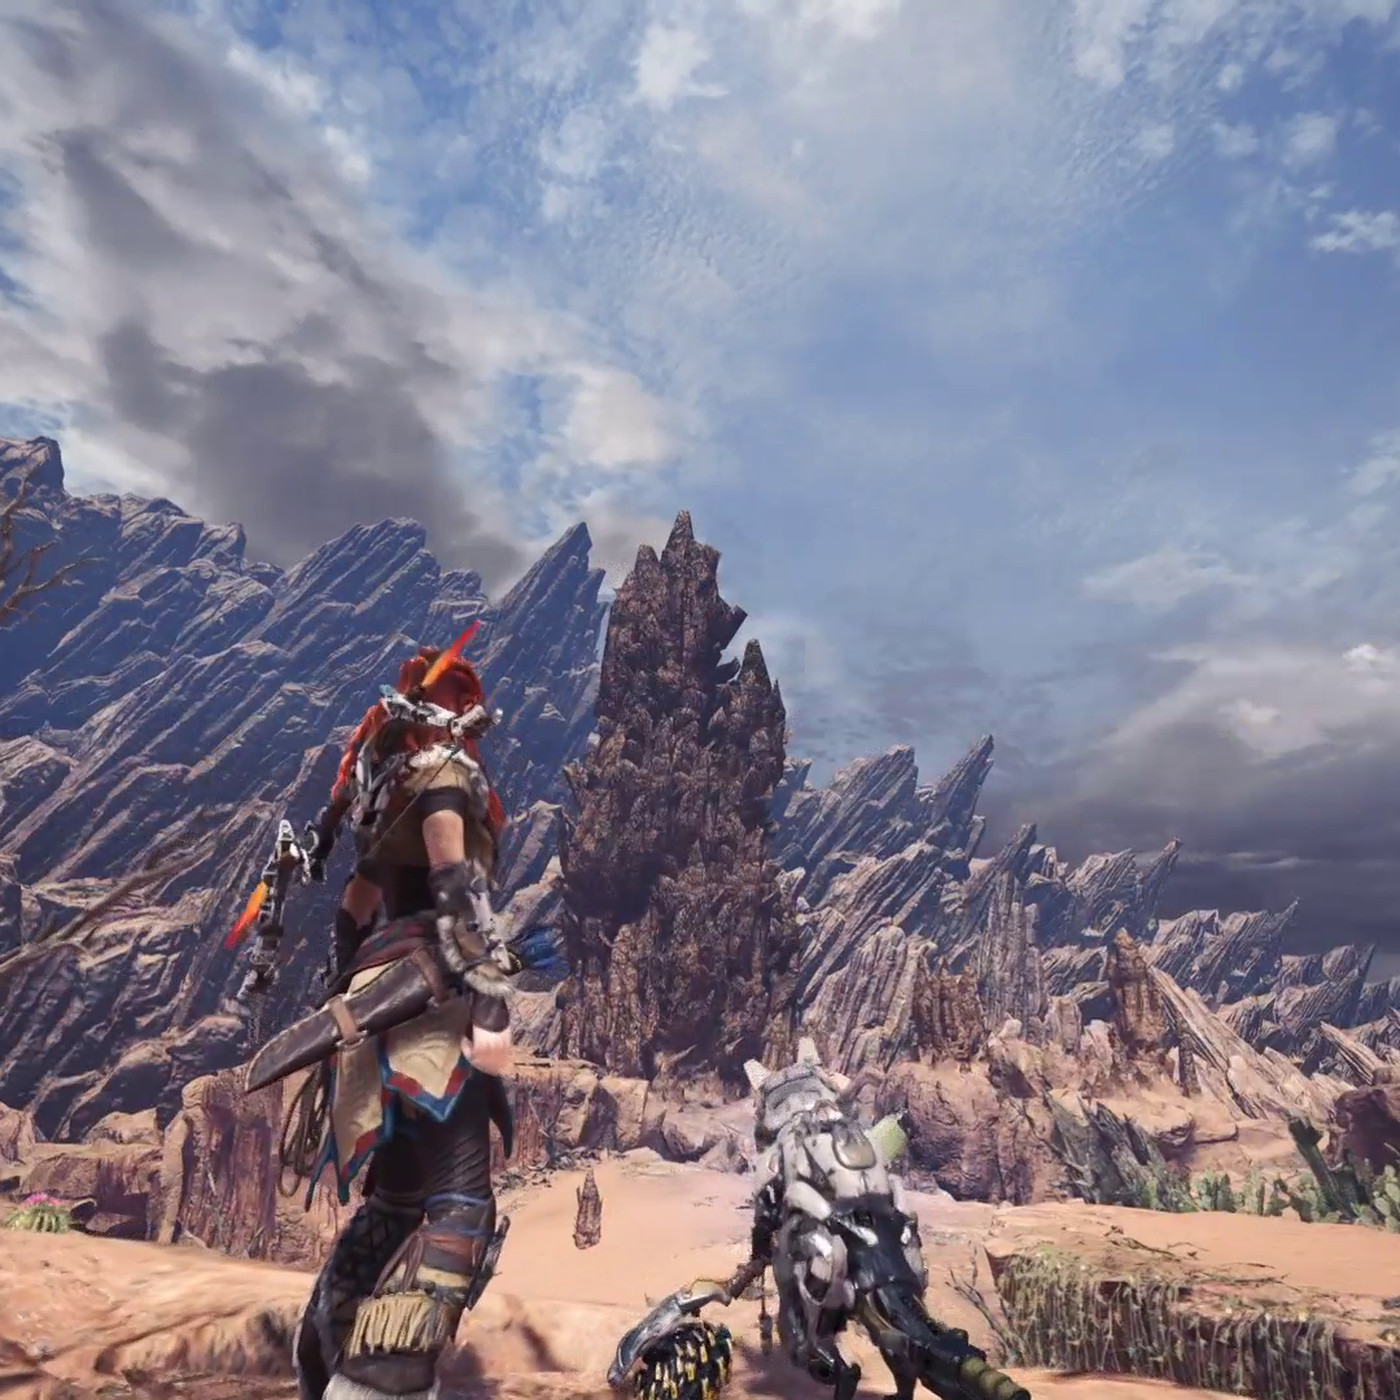 Monster Hunter: World free PS4 trial dates - Polygon